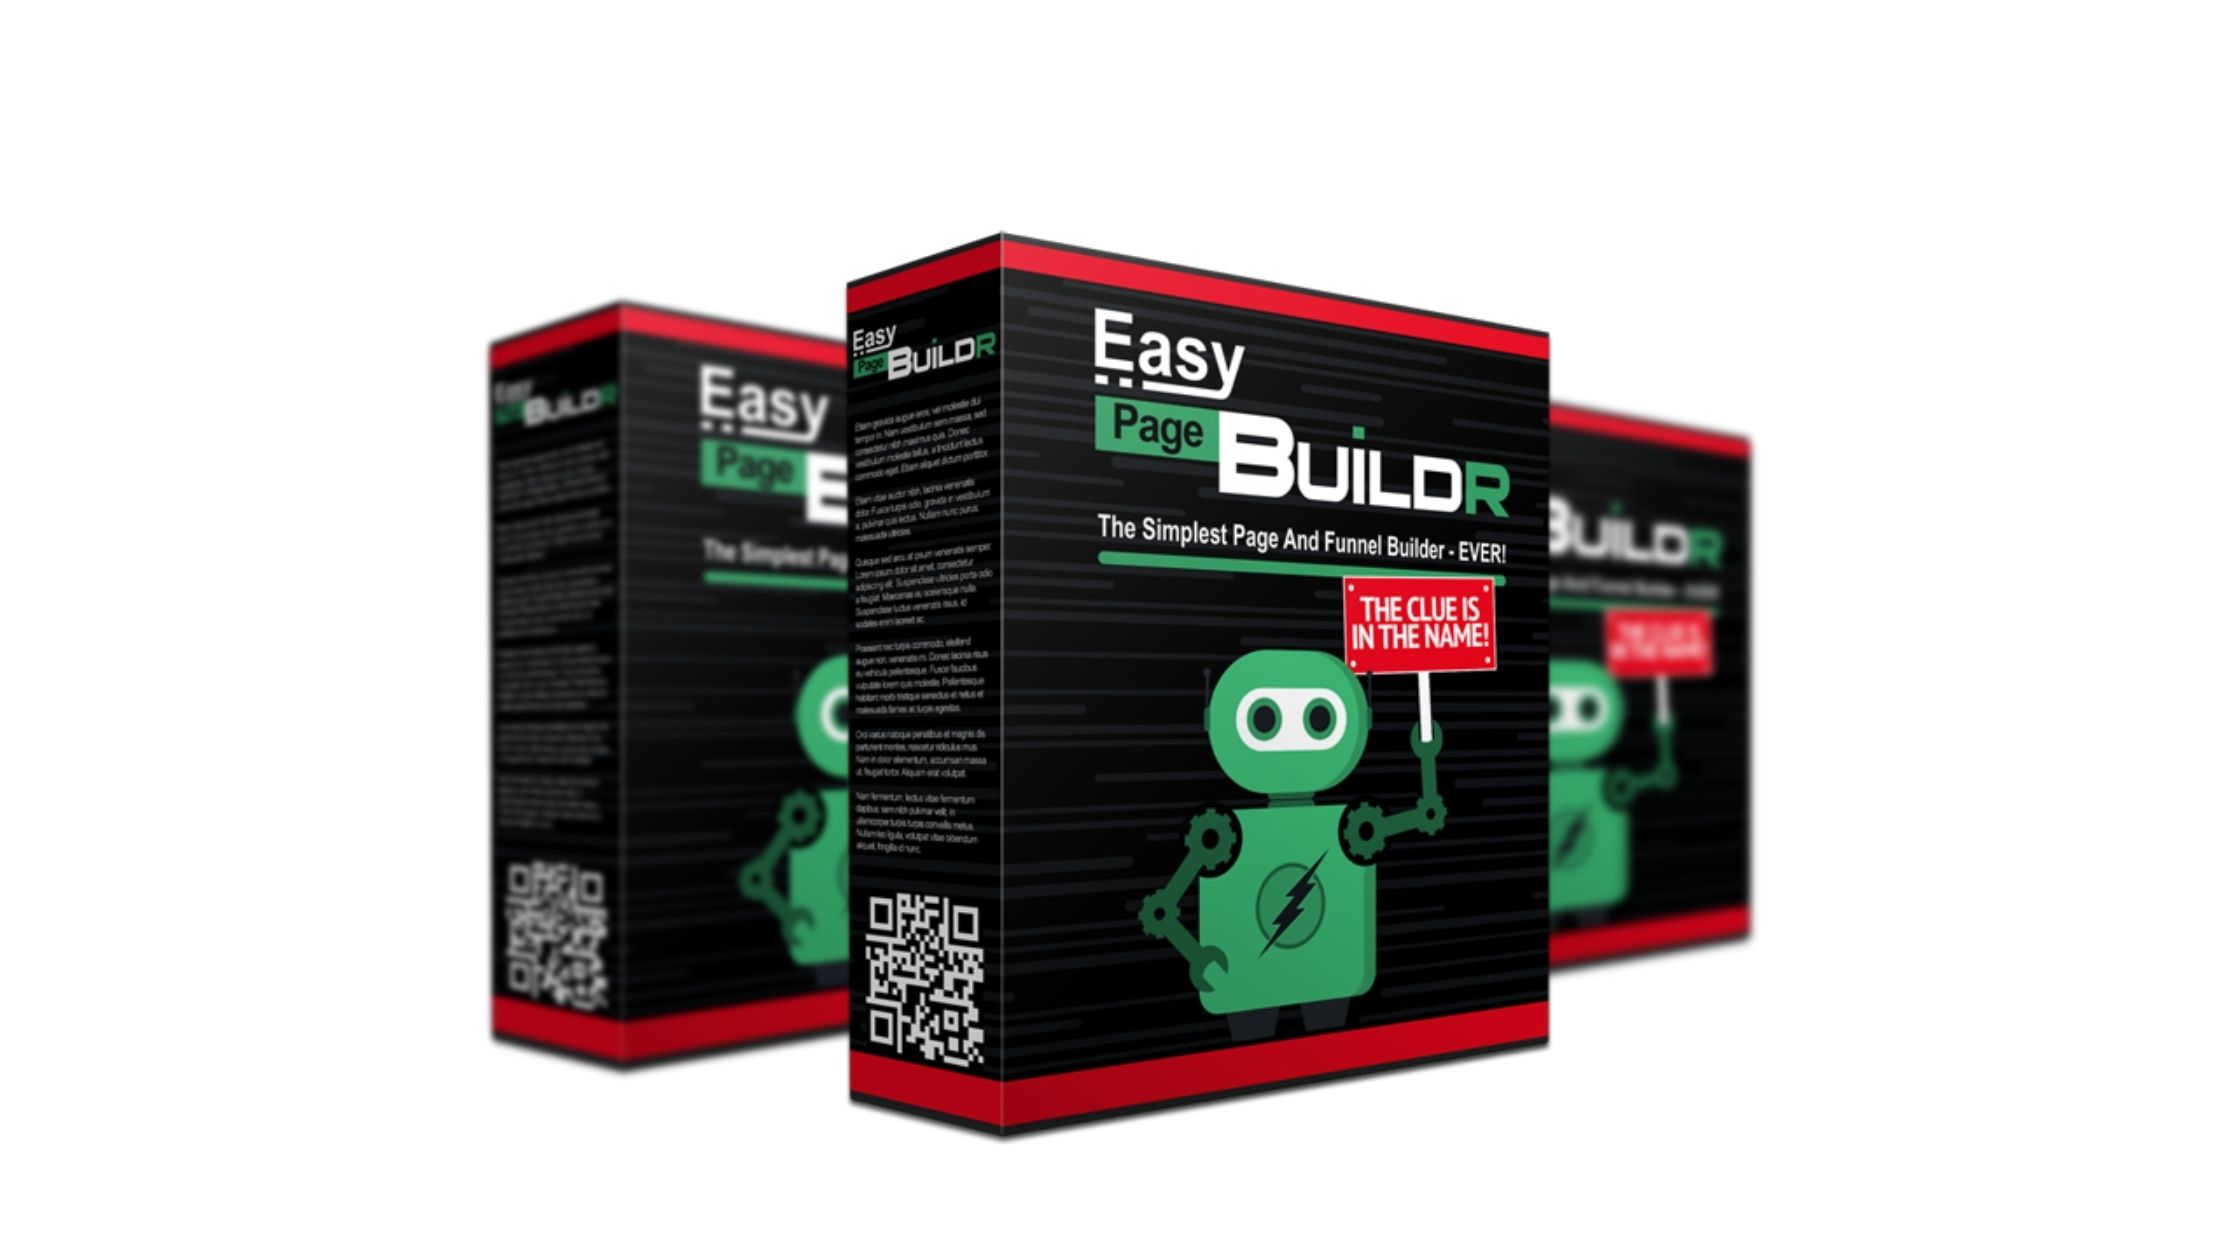 Easy Page Buildr Reviews